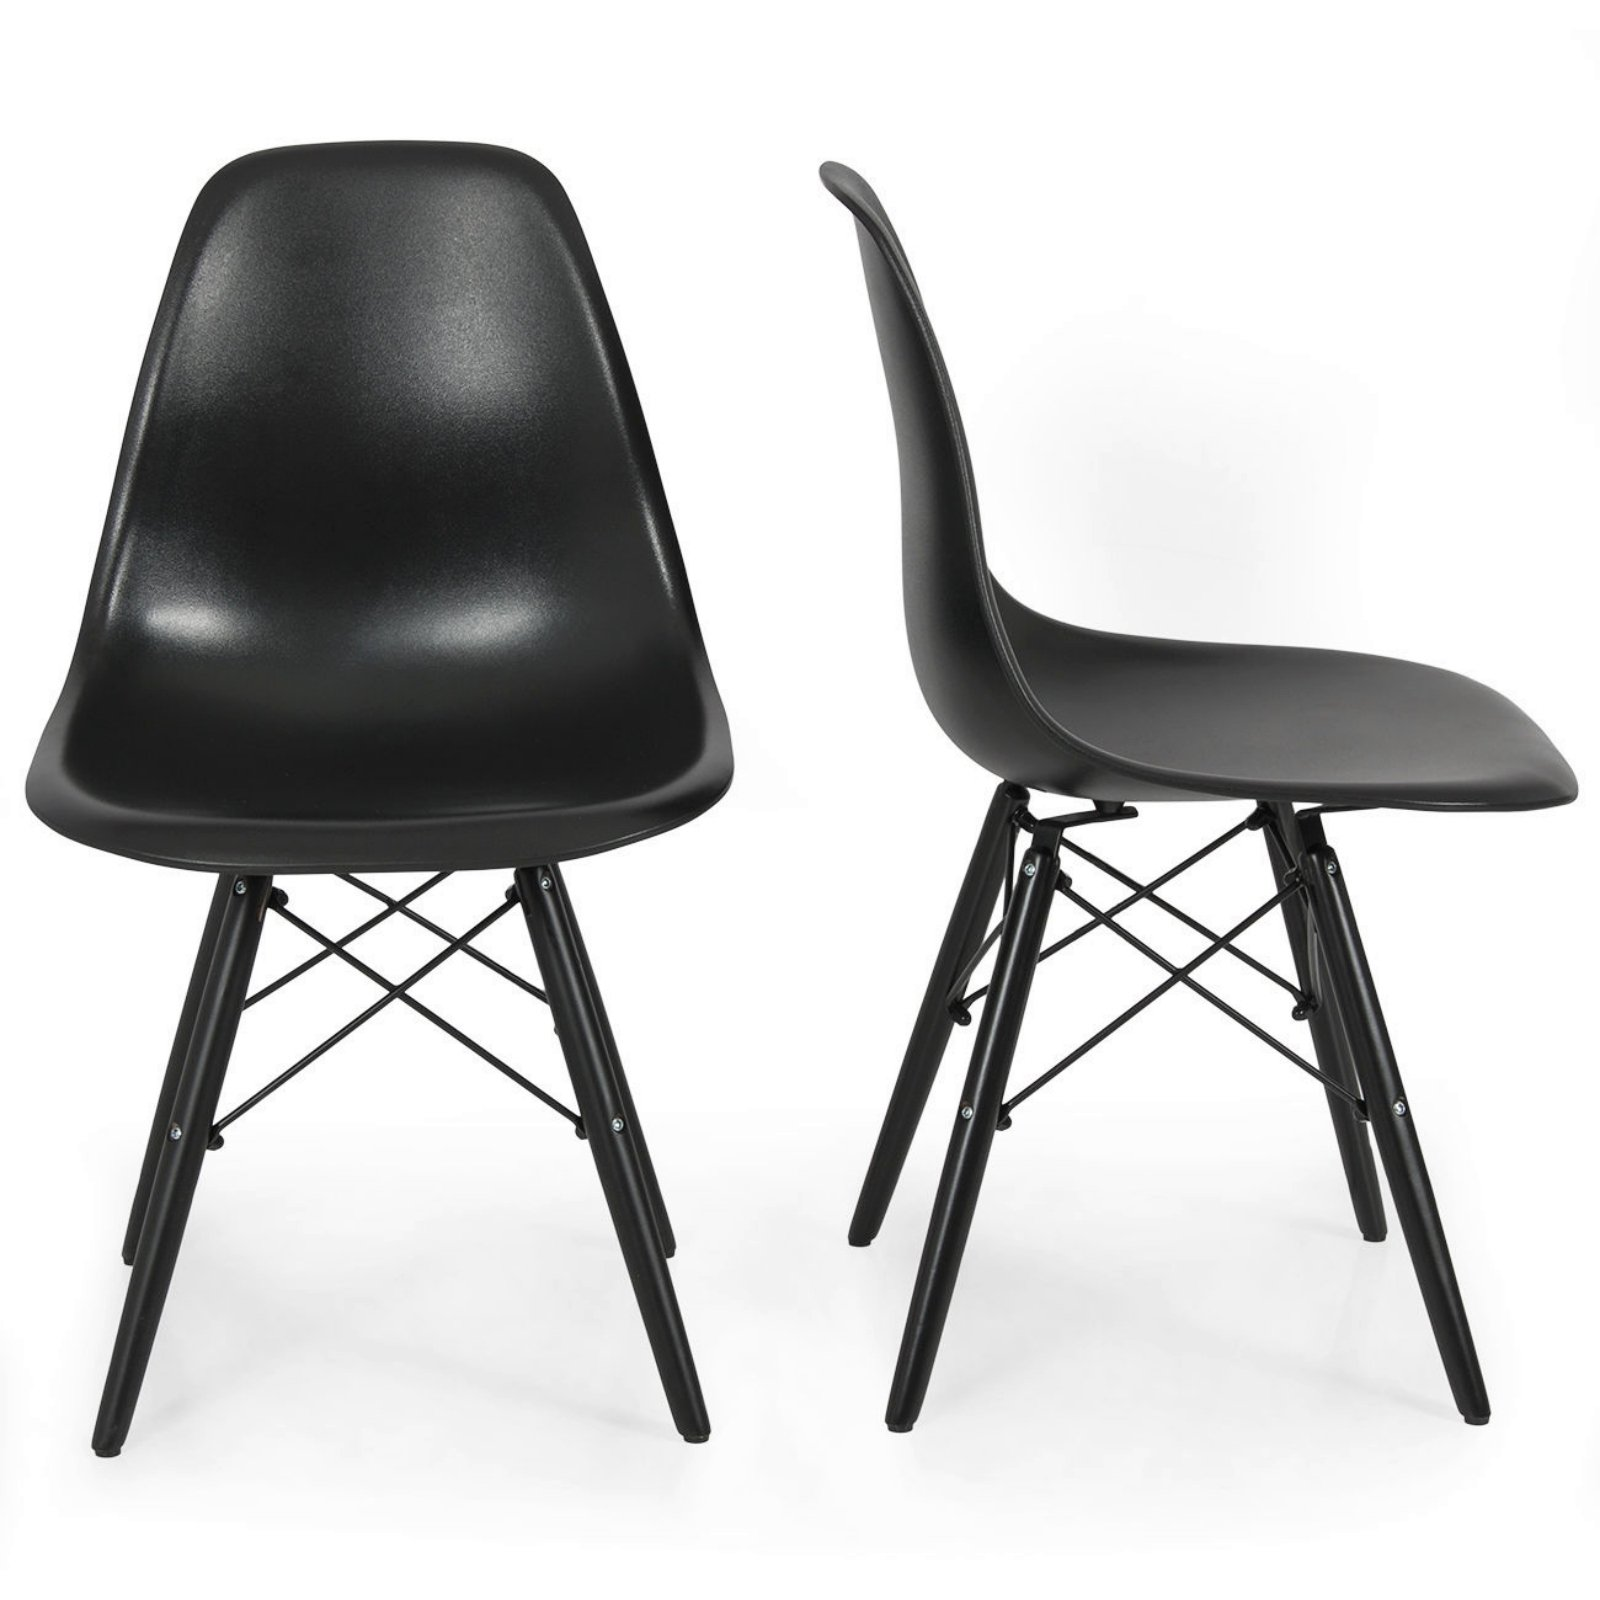 Set of 2 Mid Century Modern Style Eco-Friendly Materials Dining Side Chair Black W/ Black Wood #262